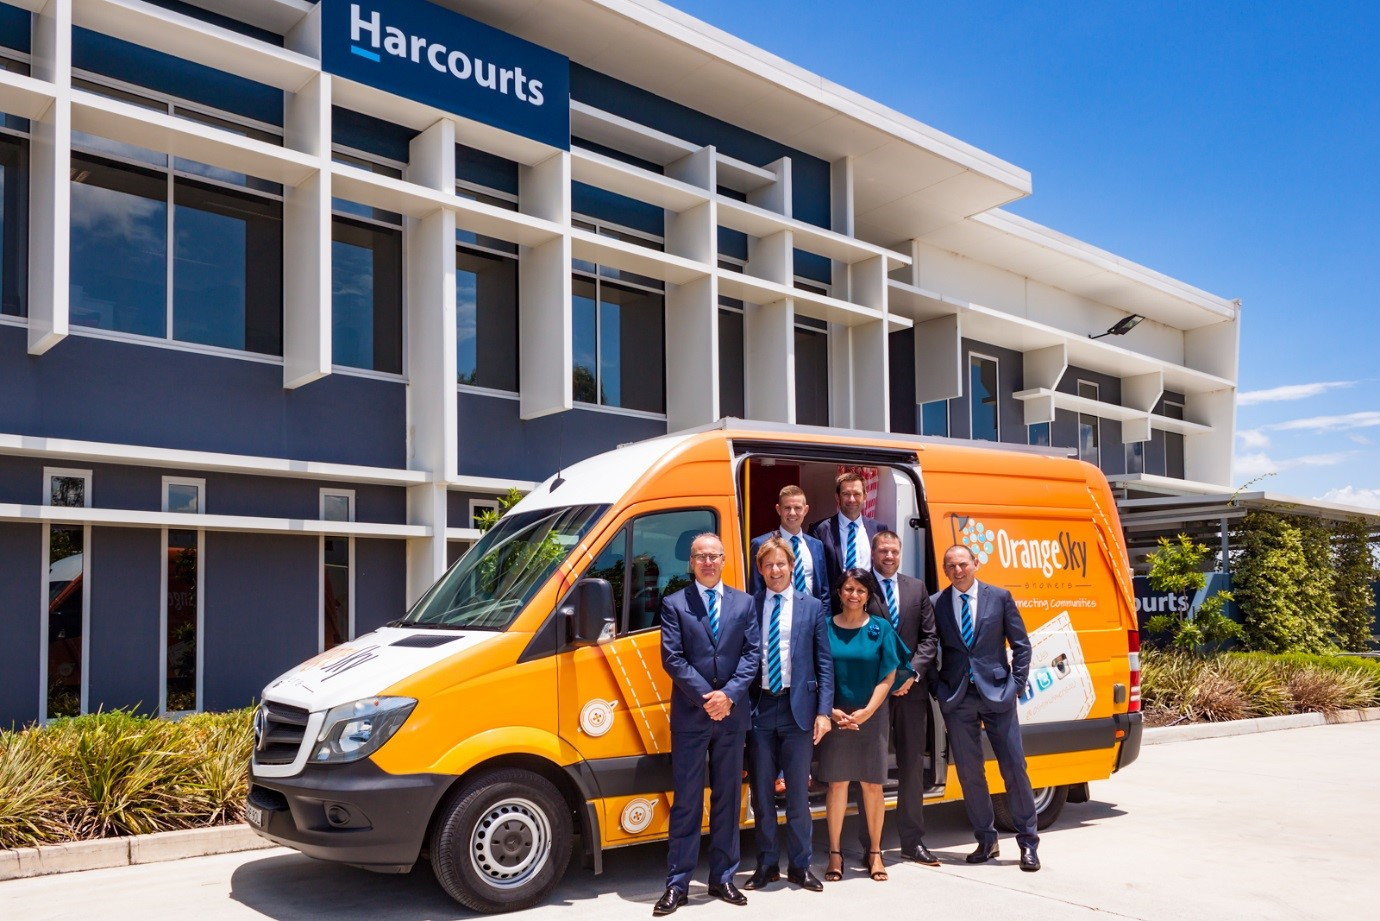 The Harcourts Foundation Announces Support of Orange Sky Laundry